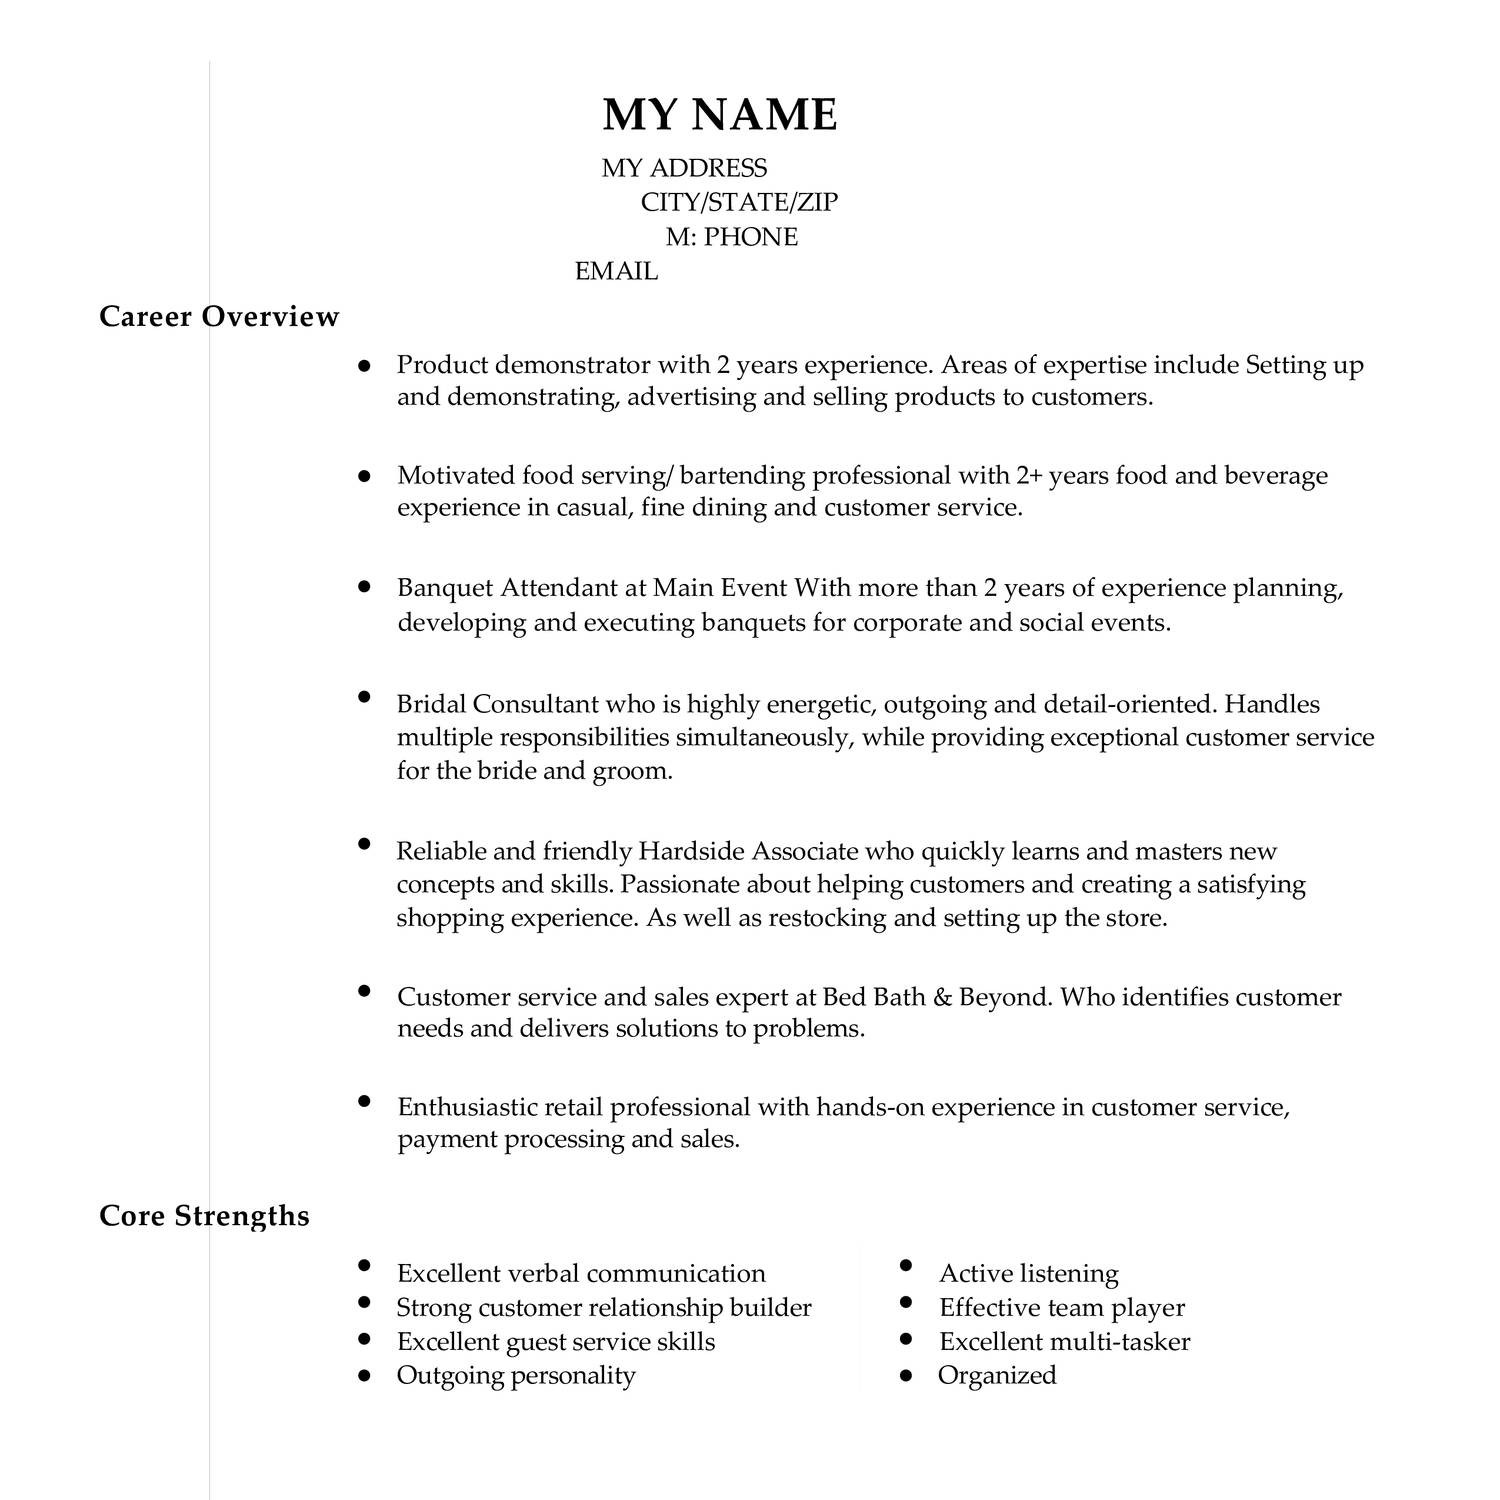 Anonymized Resume Pdf Docdroid